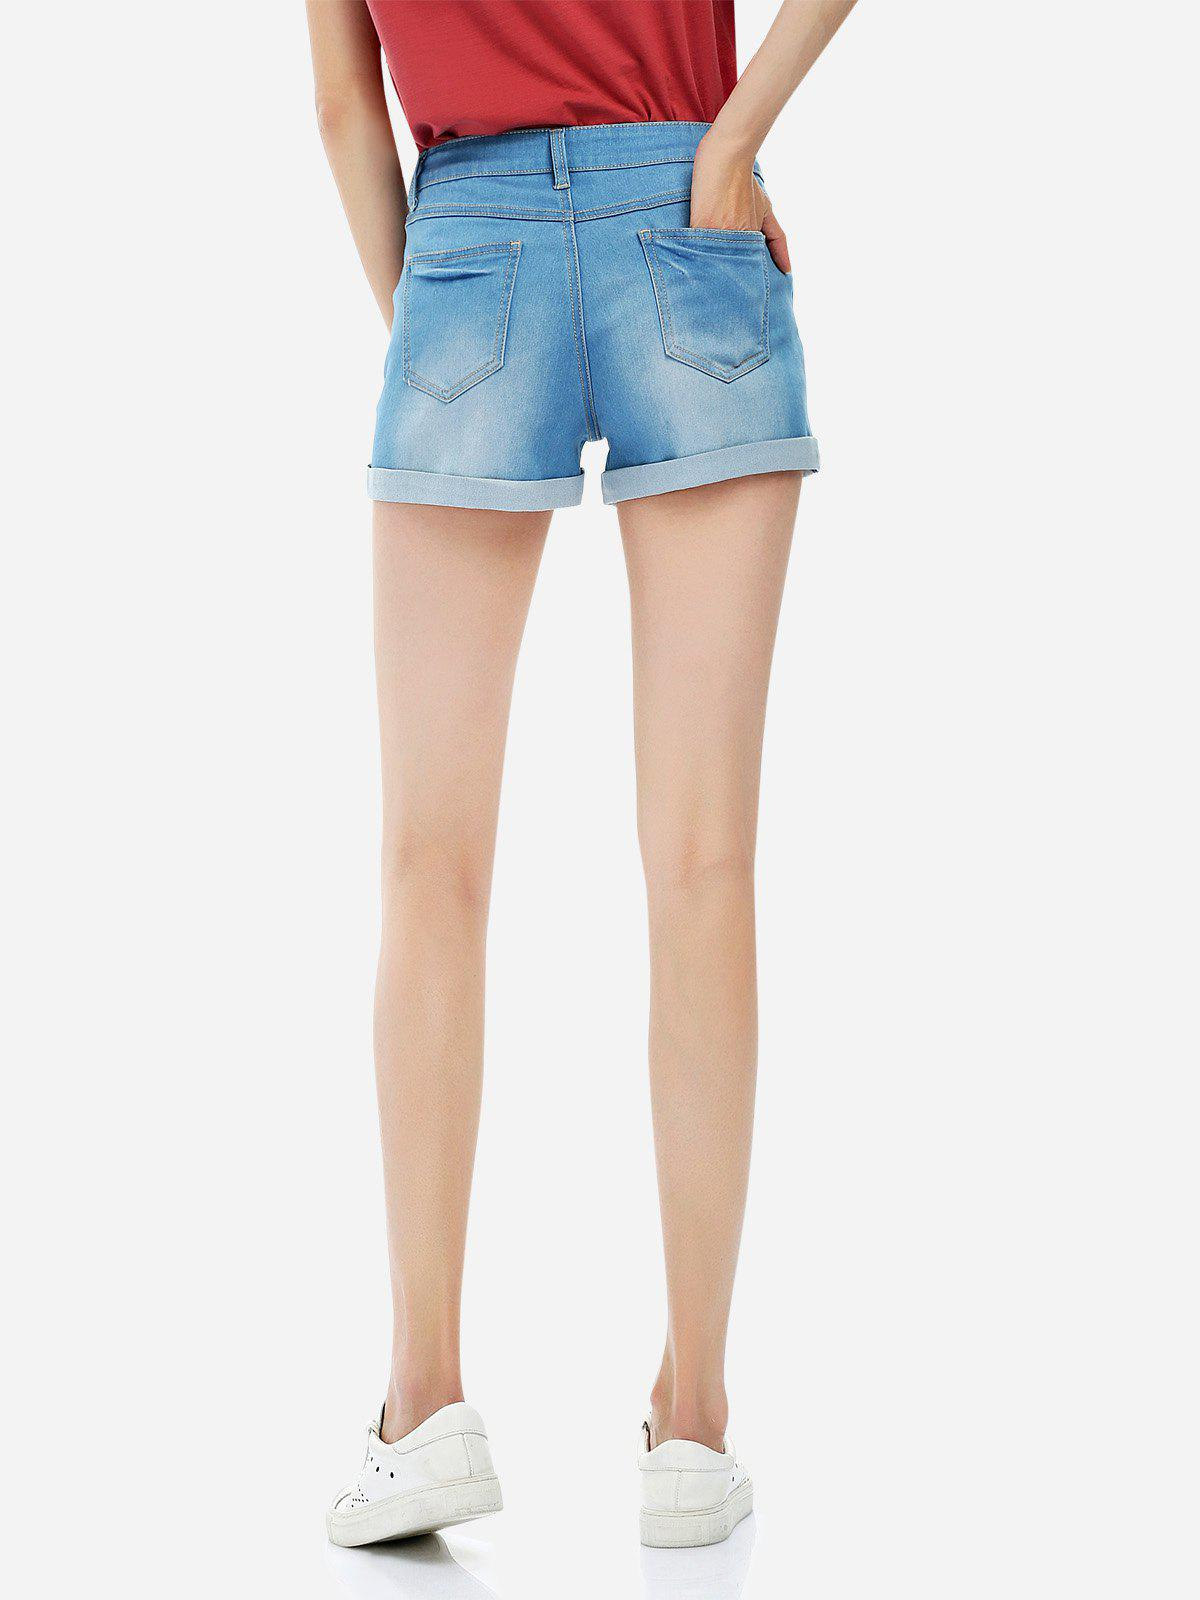 Faded Denim Shorts - BLUE S